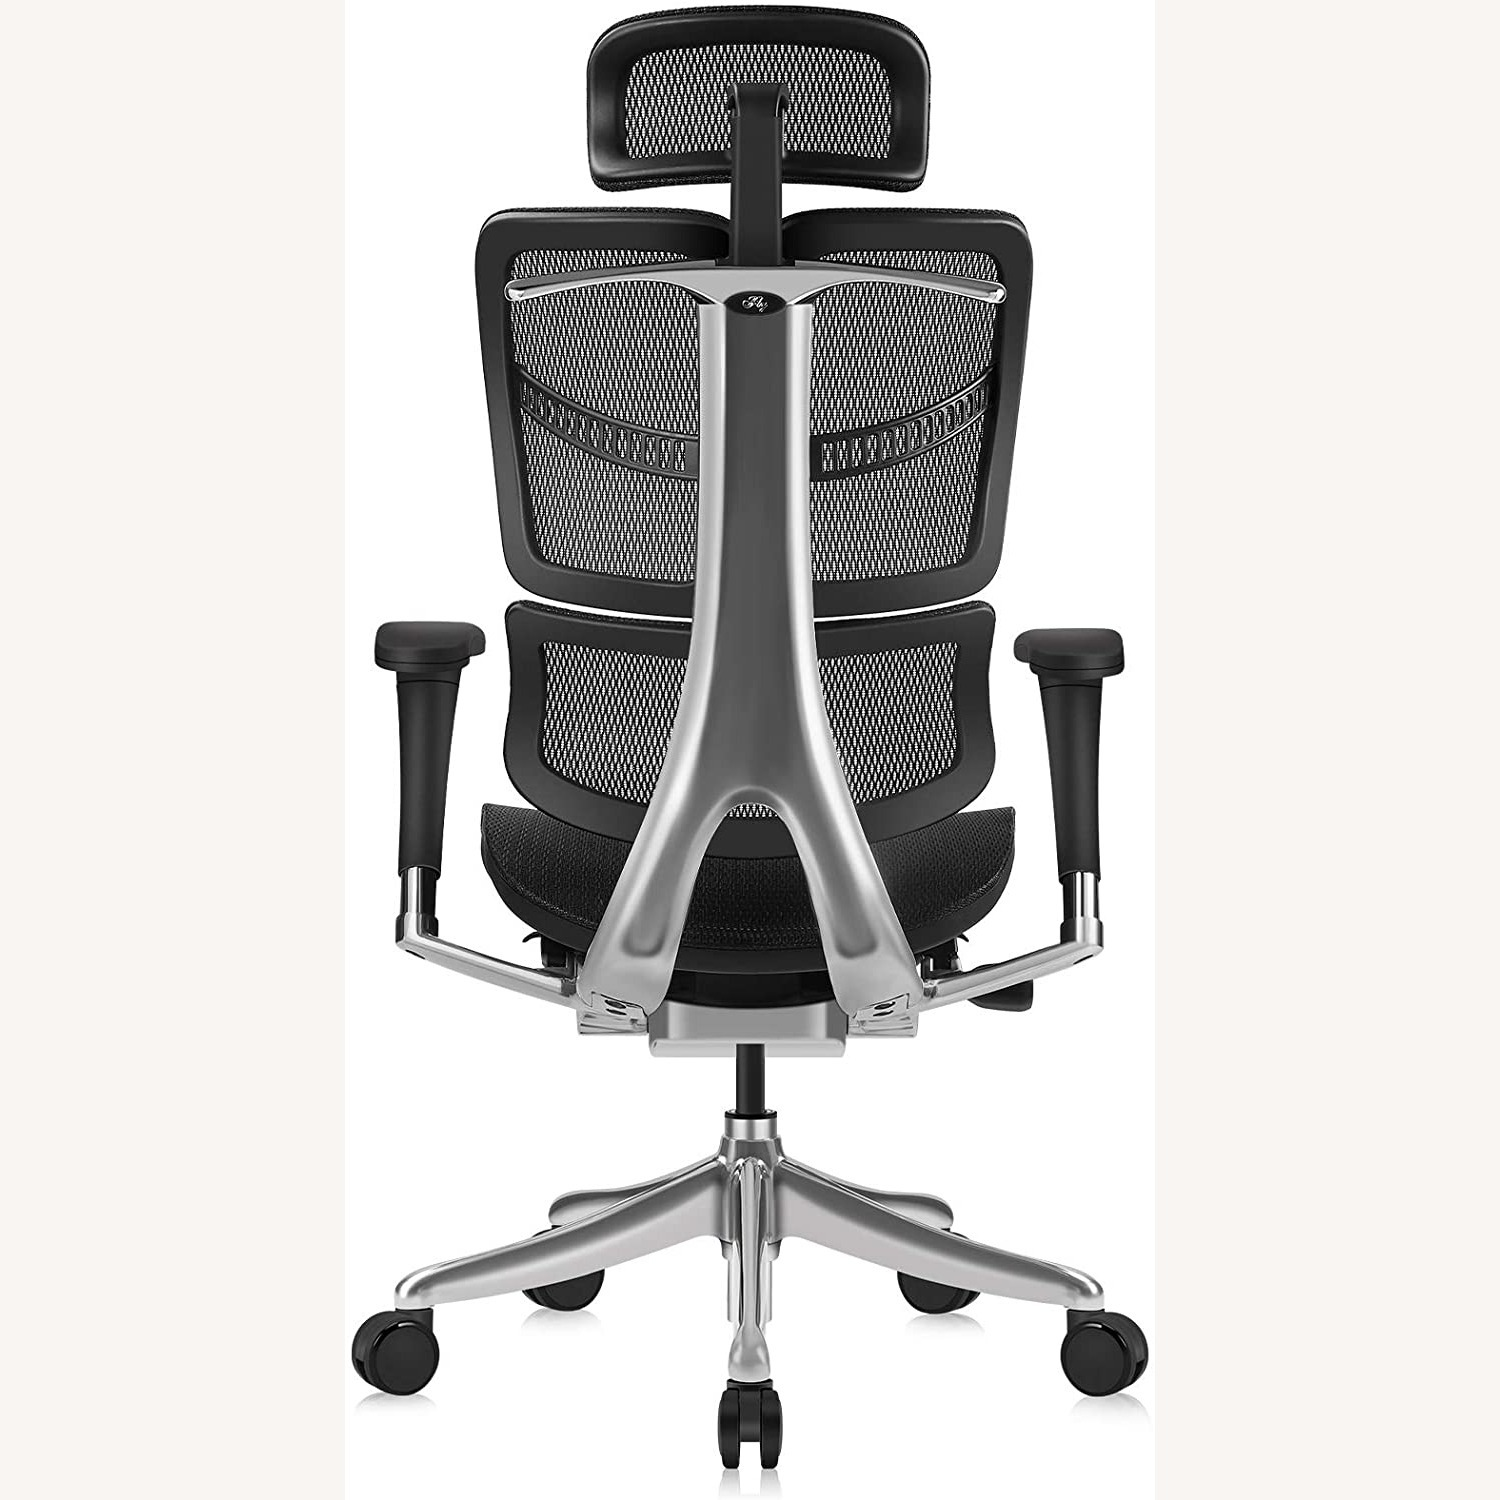 Ergonomic Office Chair with Headrest - image-8